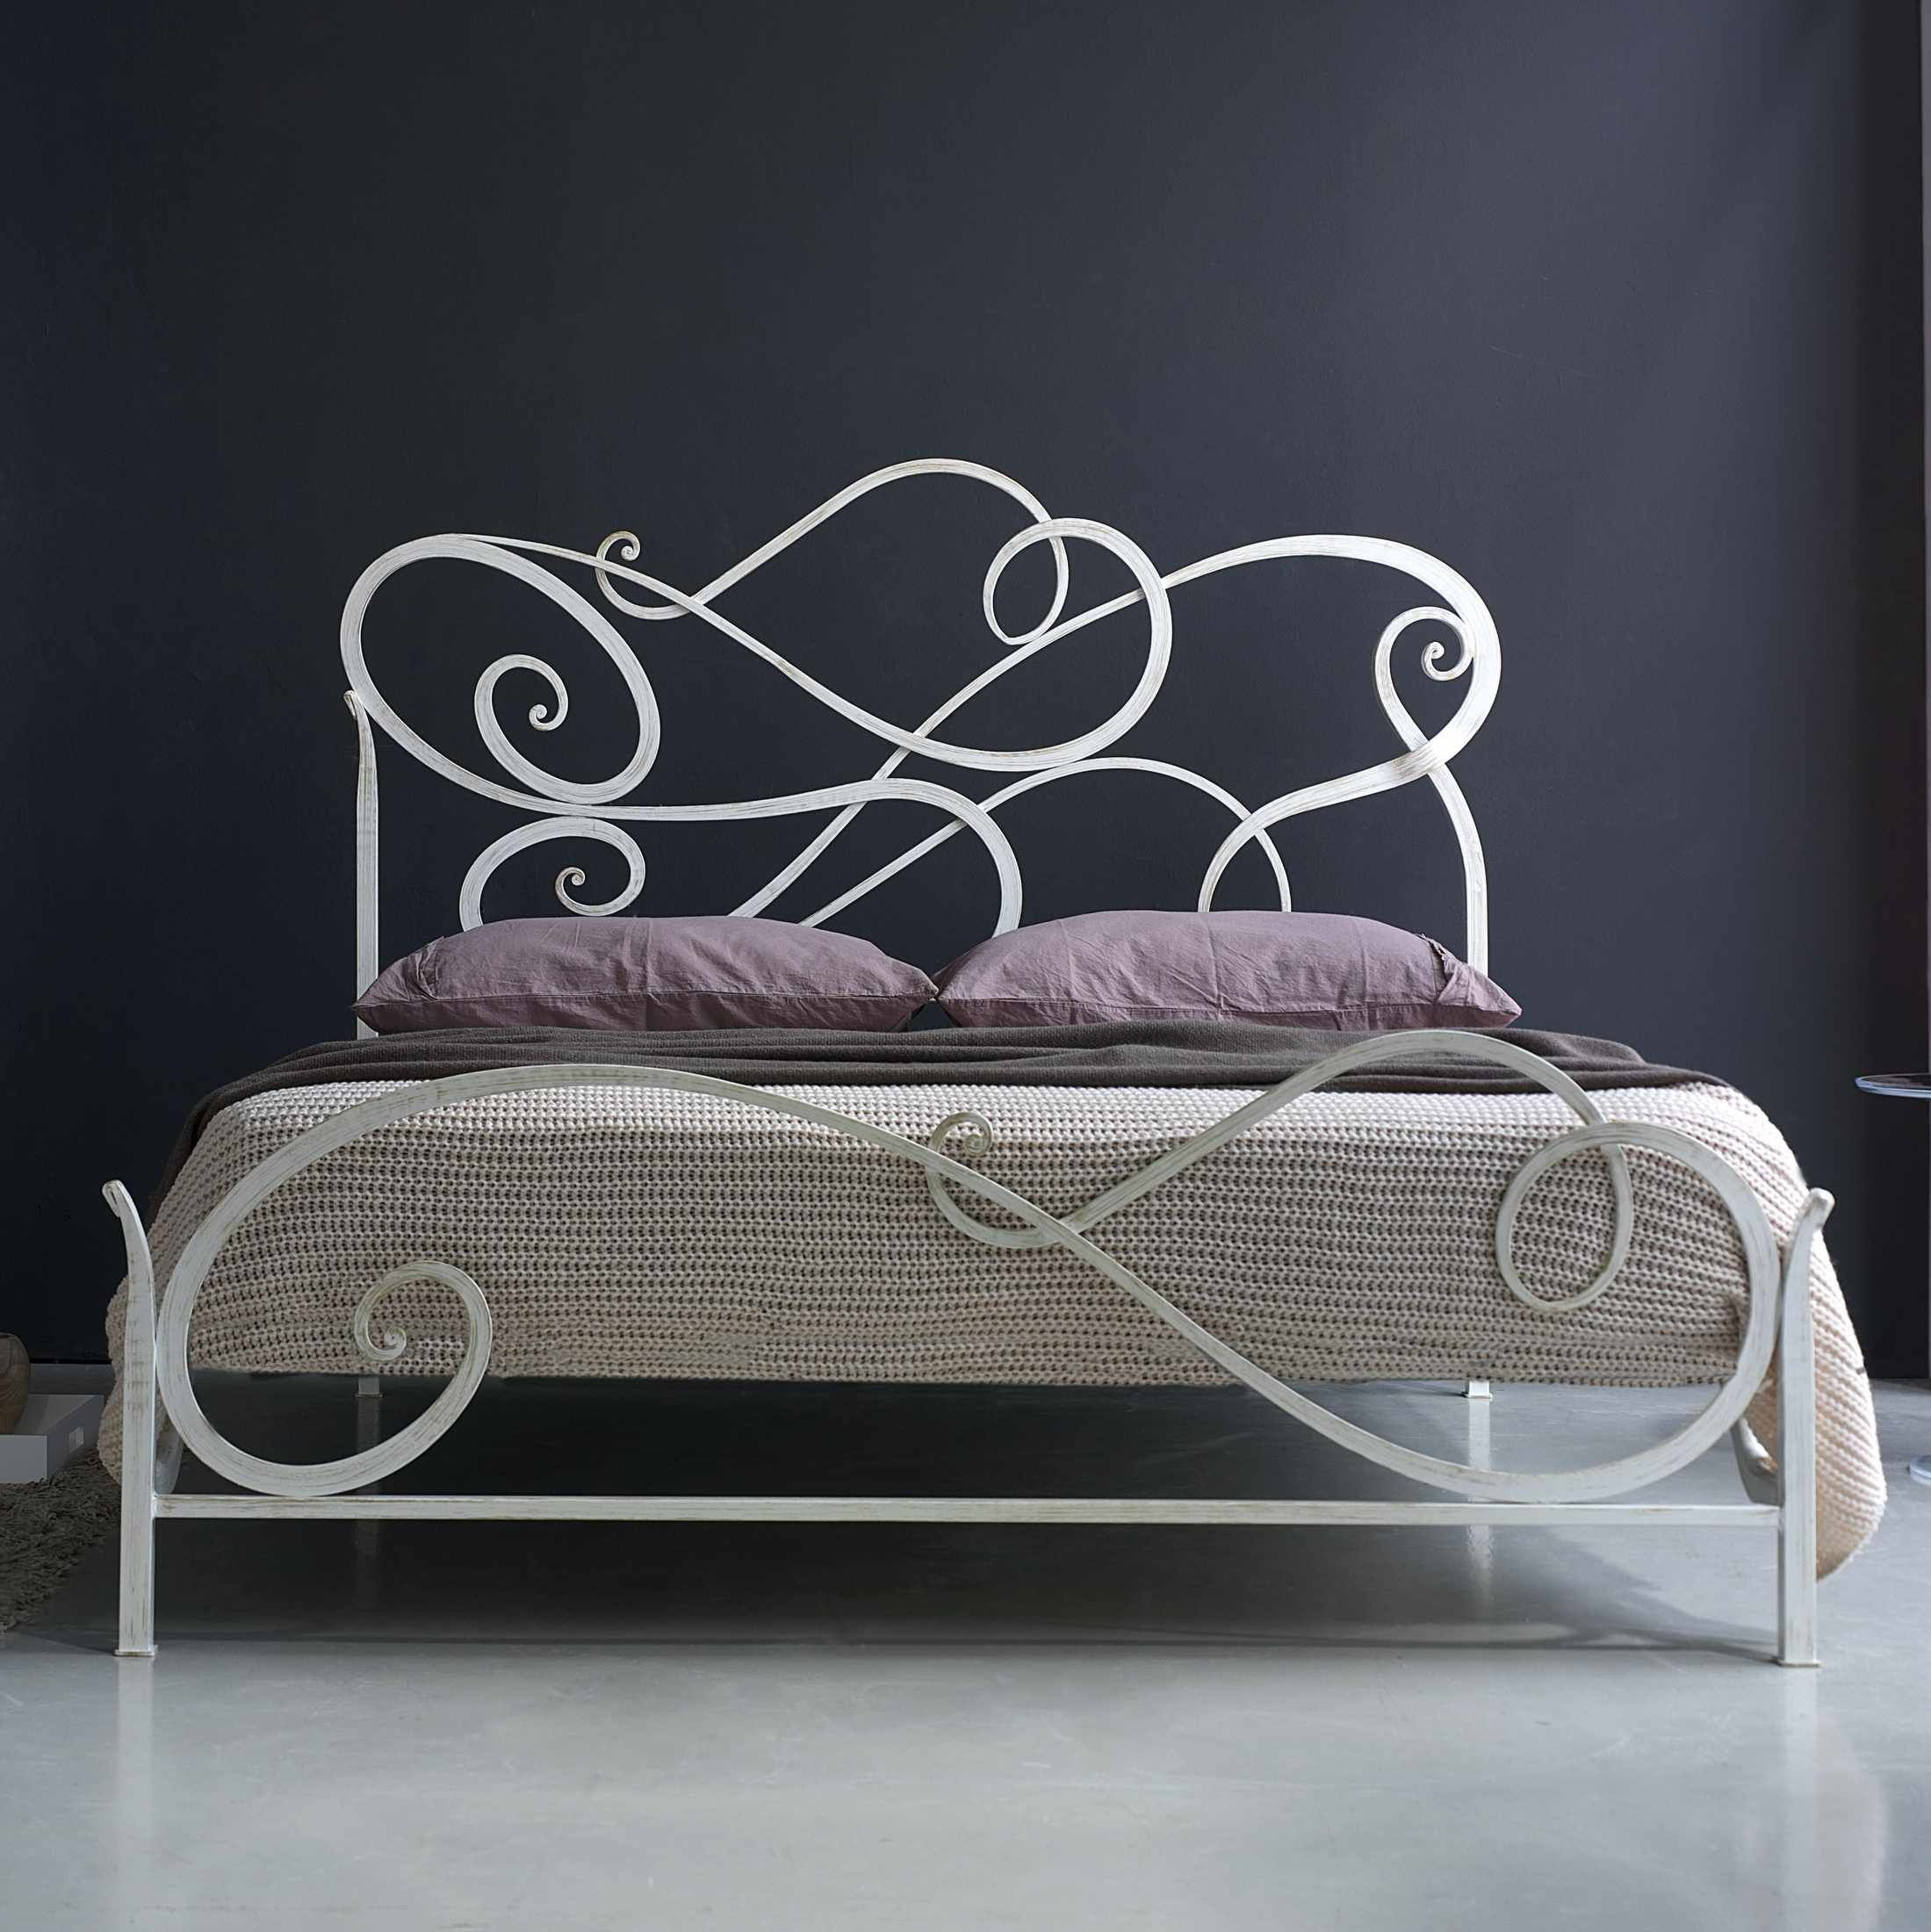 Modern White Cosatto Auran Wrought Iron Bed Design Feature Unique